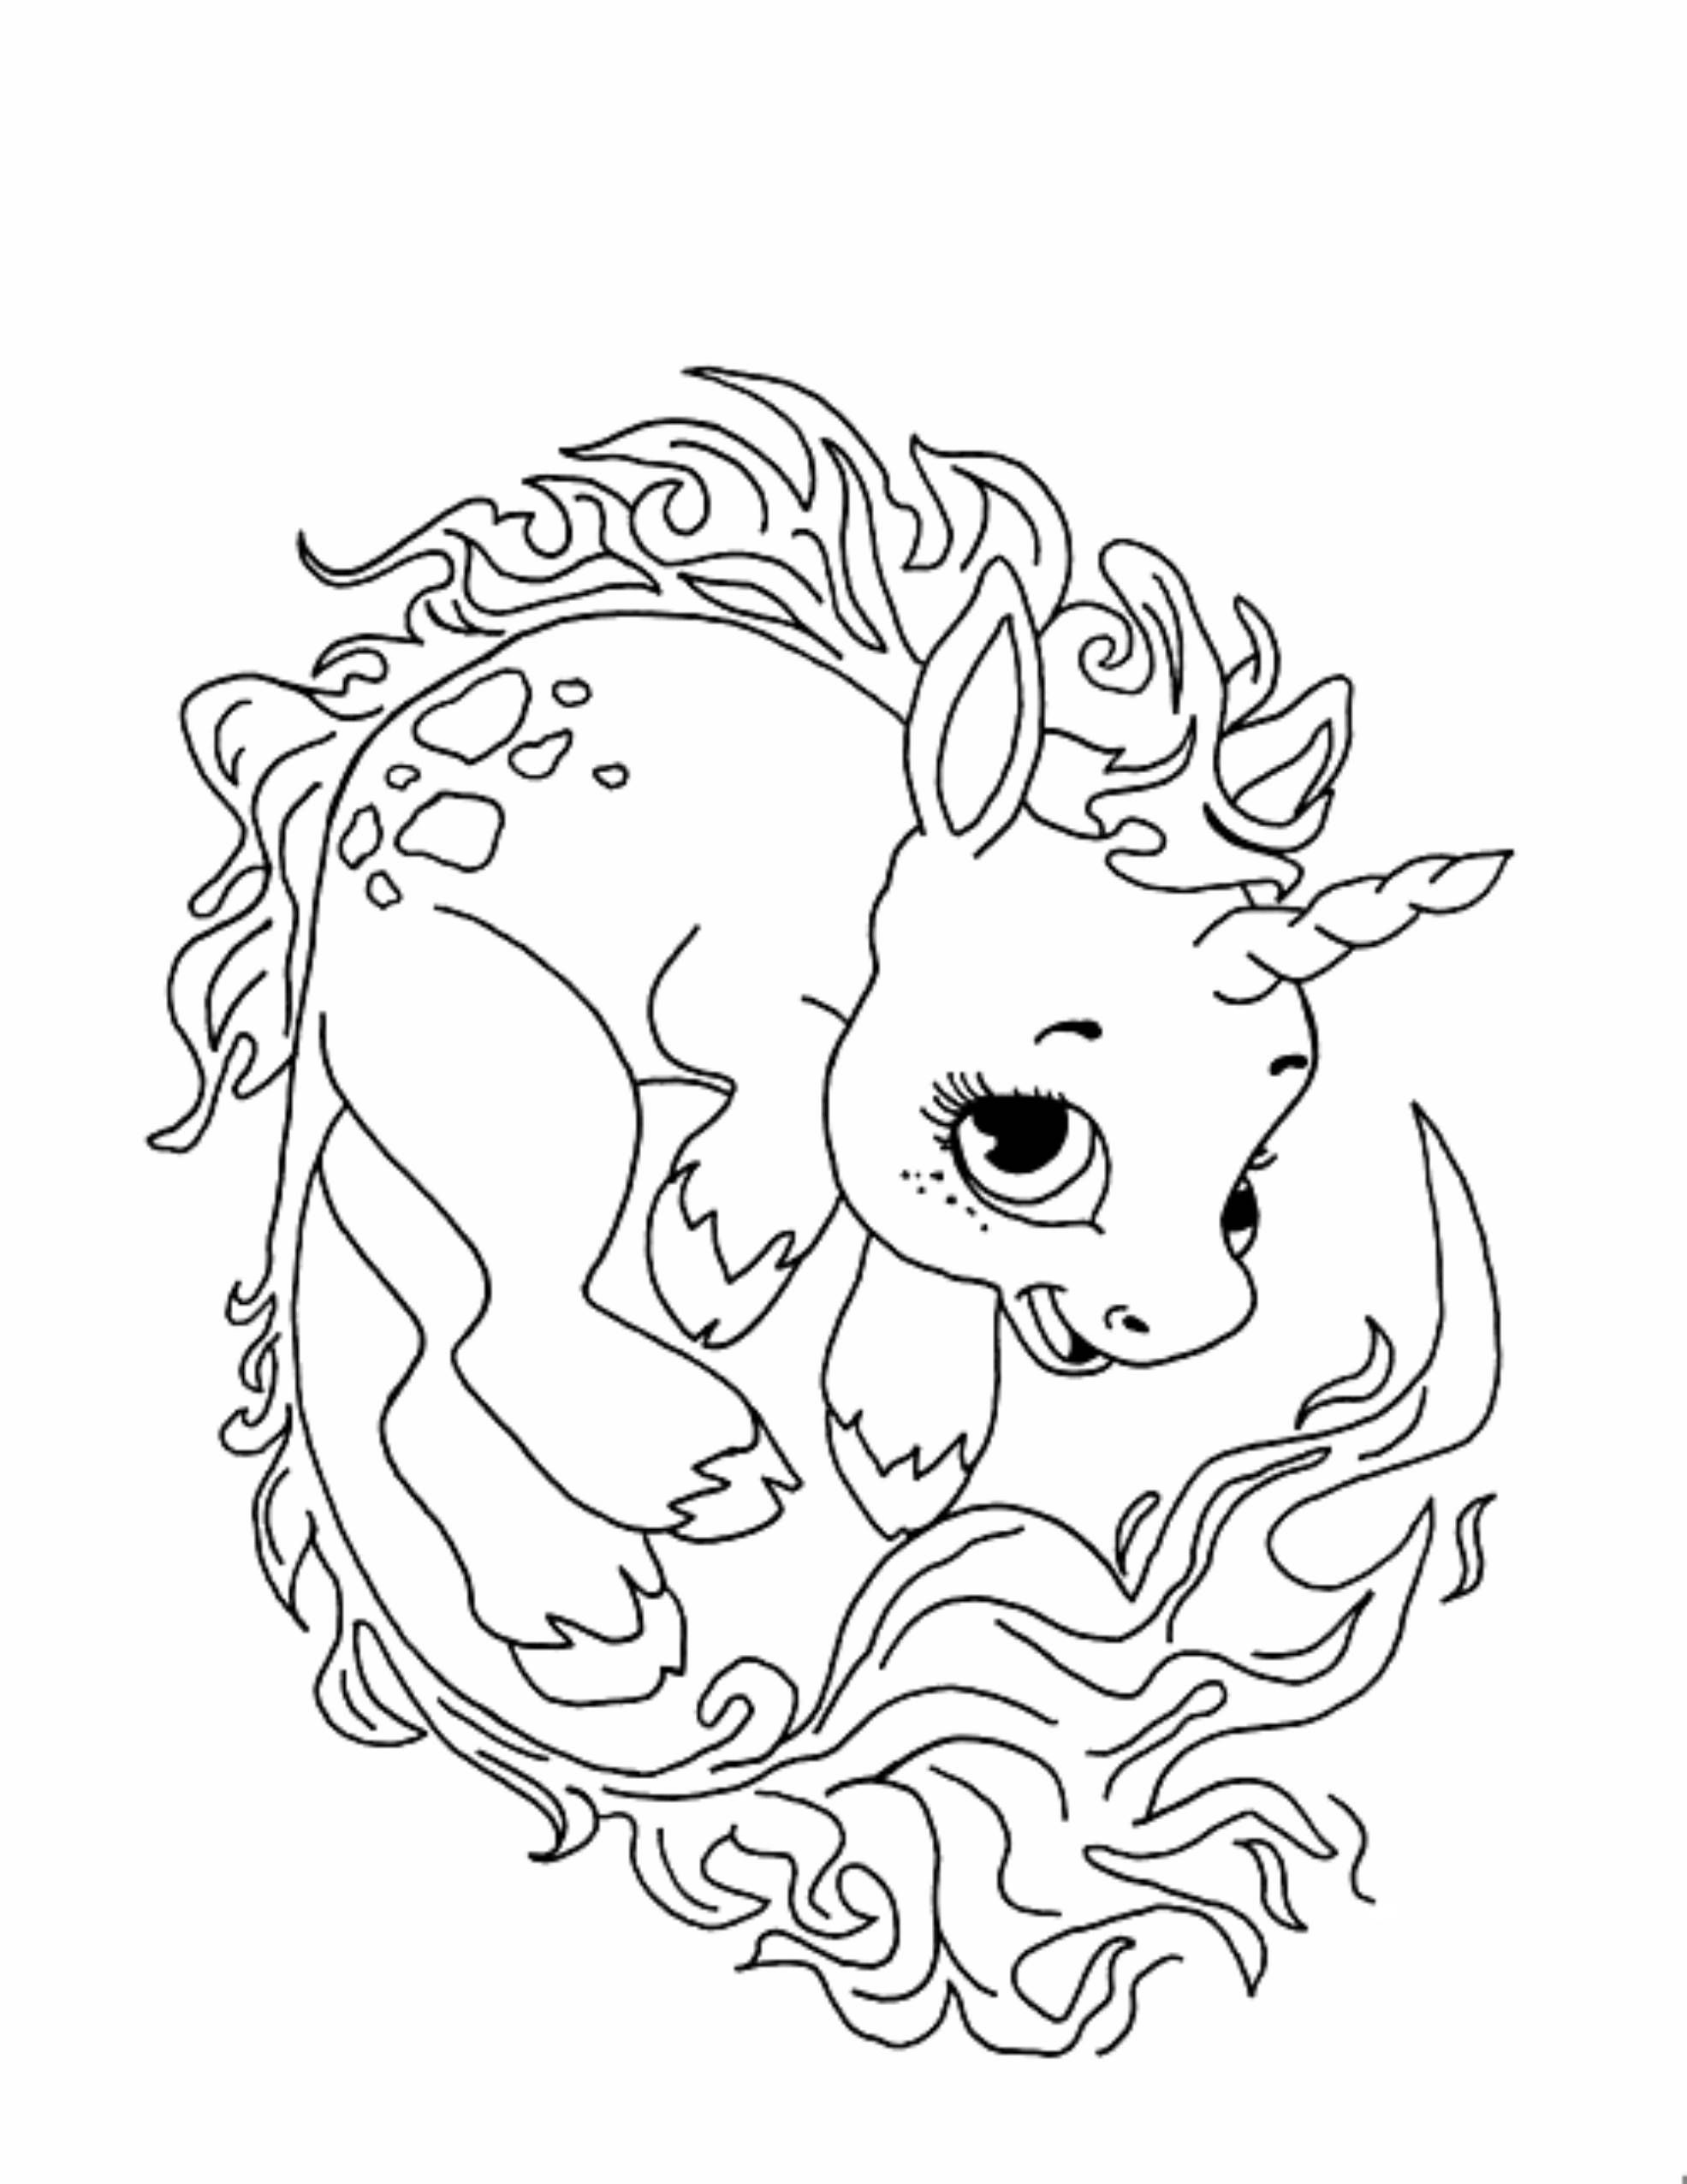 Cute Animal Coloring Pages For Adults  cute unicorn coloring pages